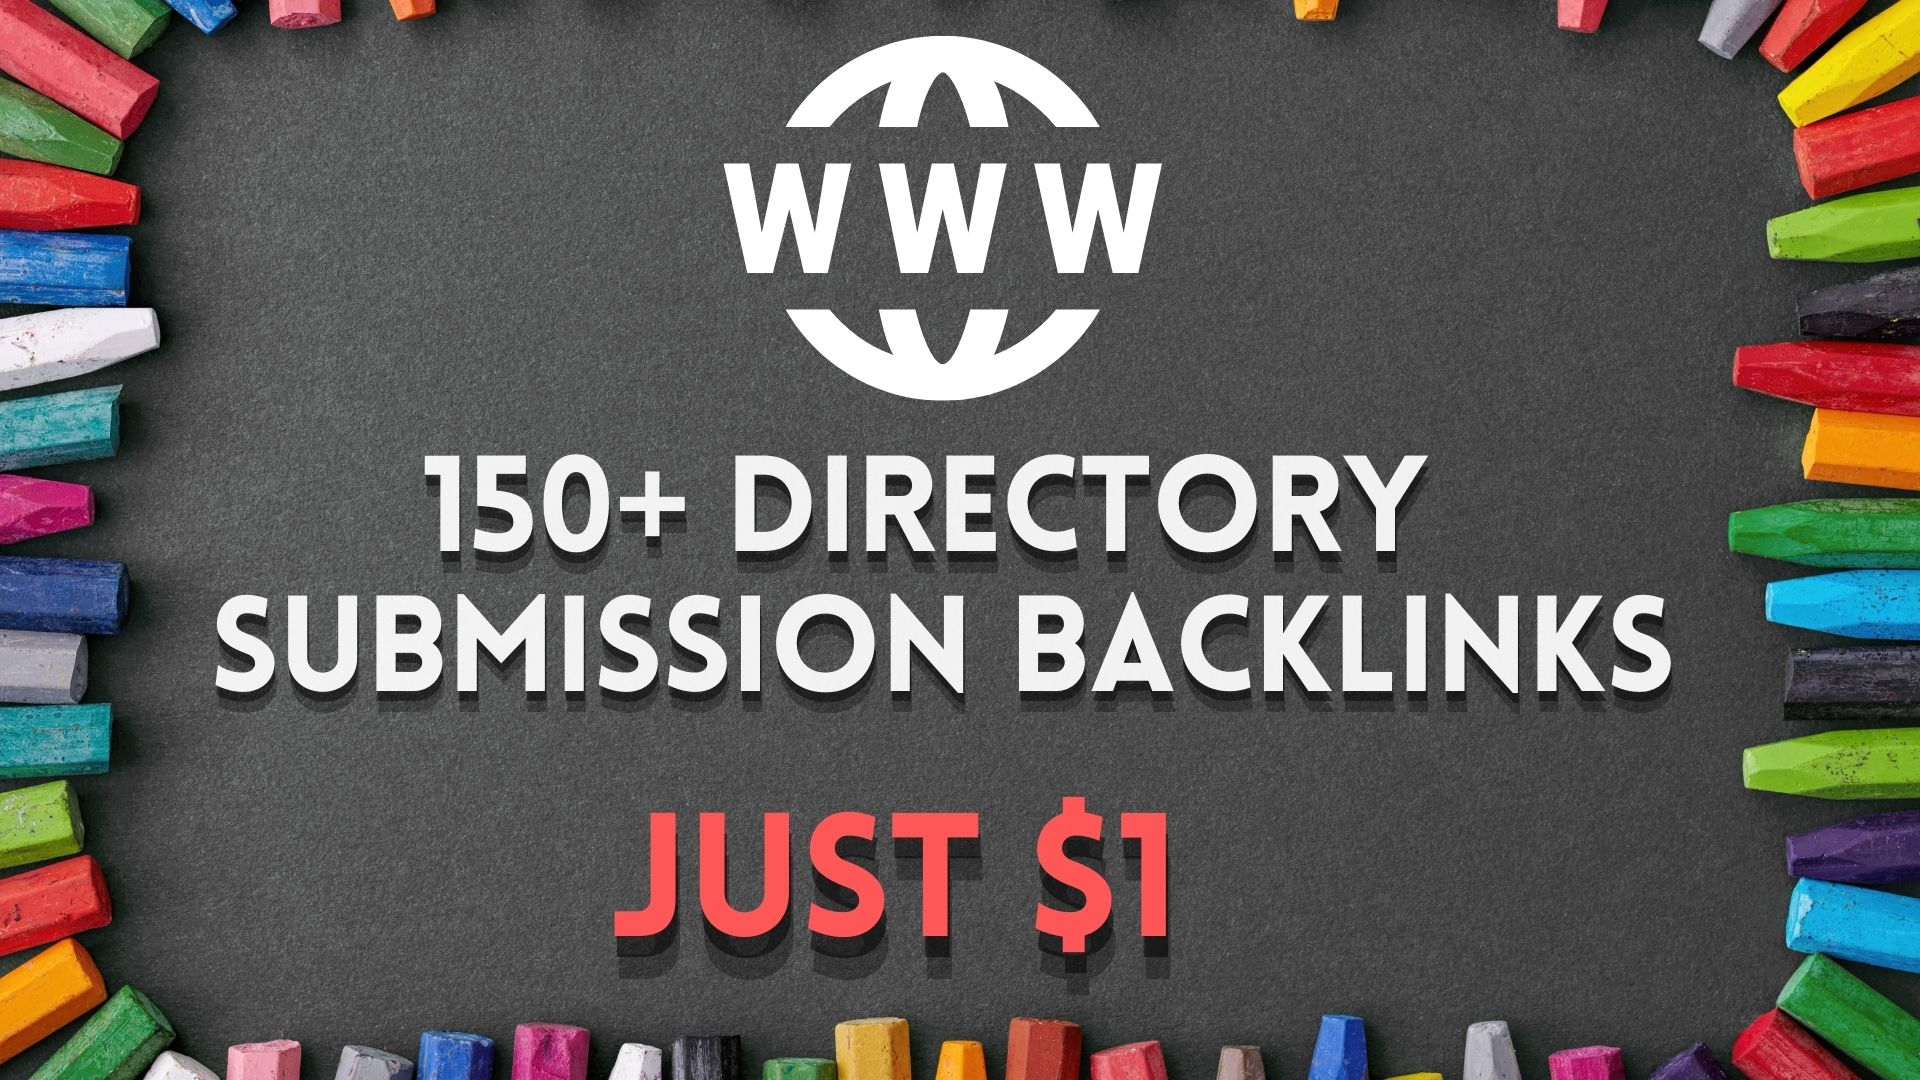 150+ Directory-Submission SEO Backlinks done by me for super fast Ranking